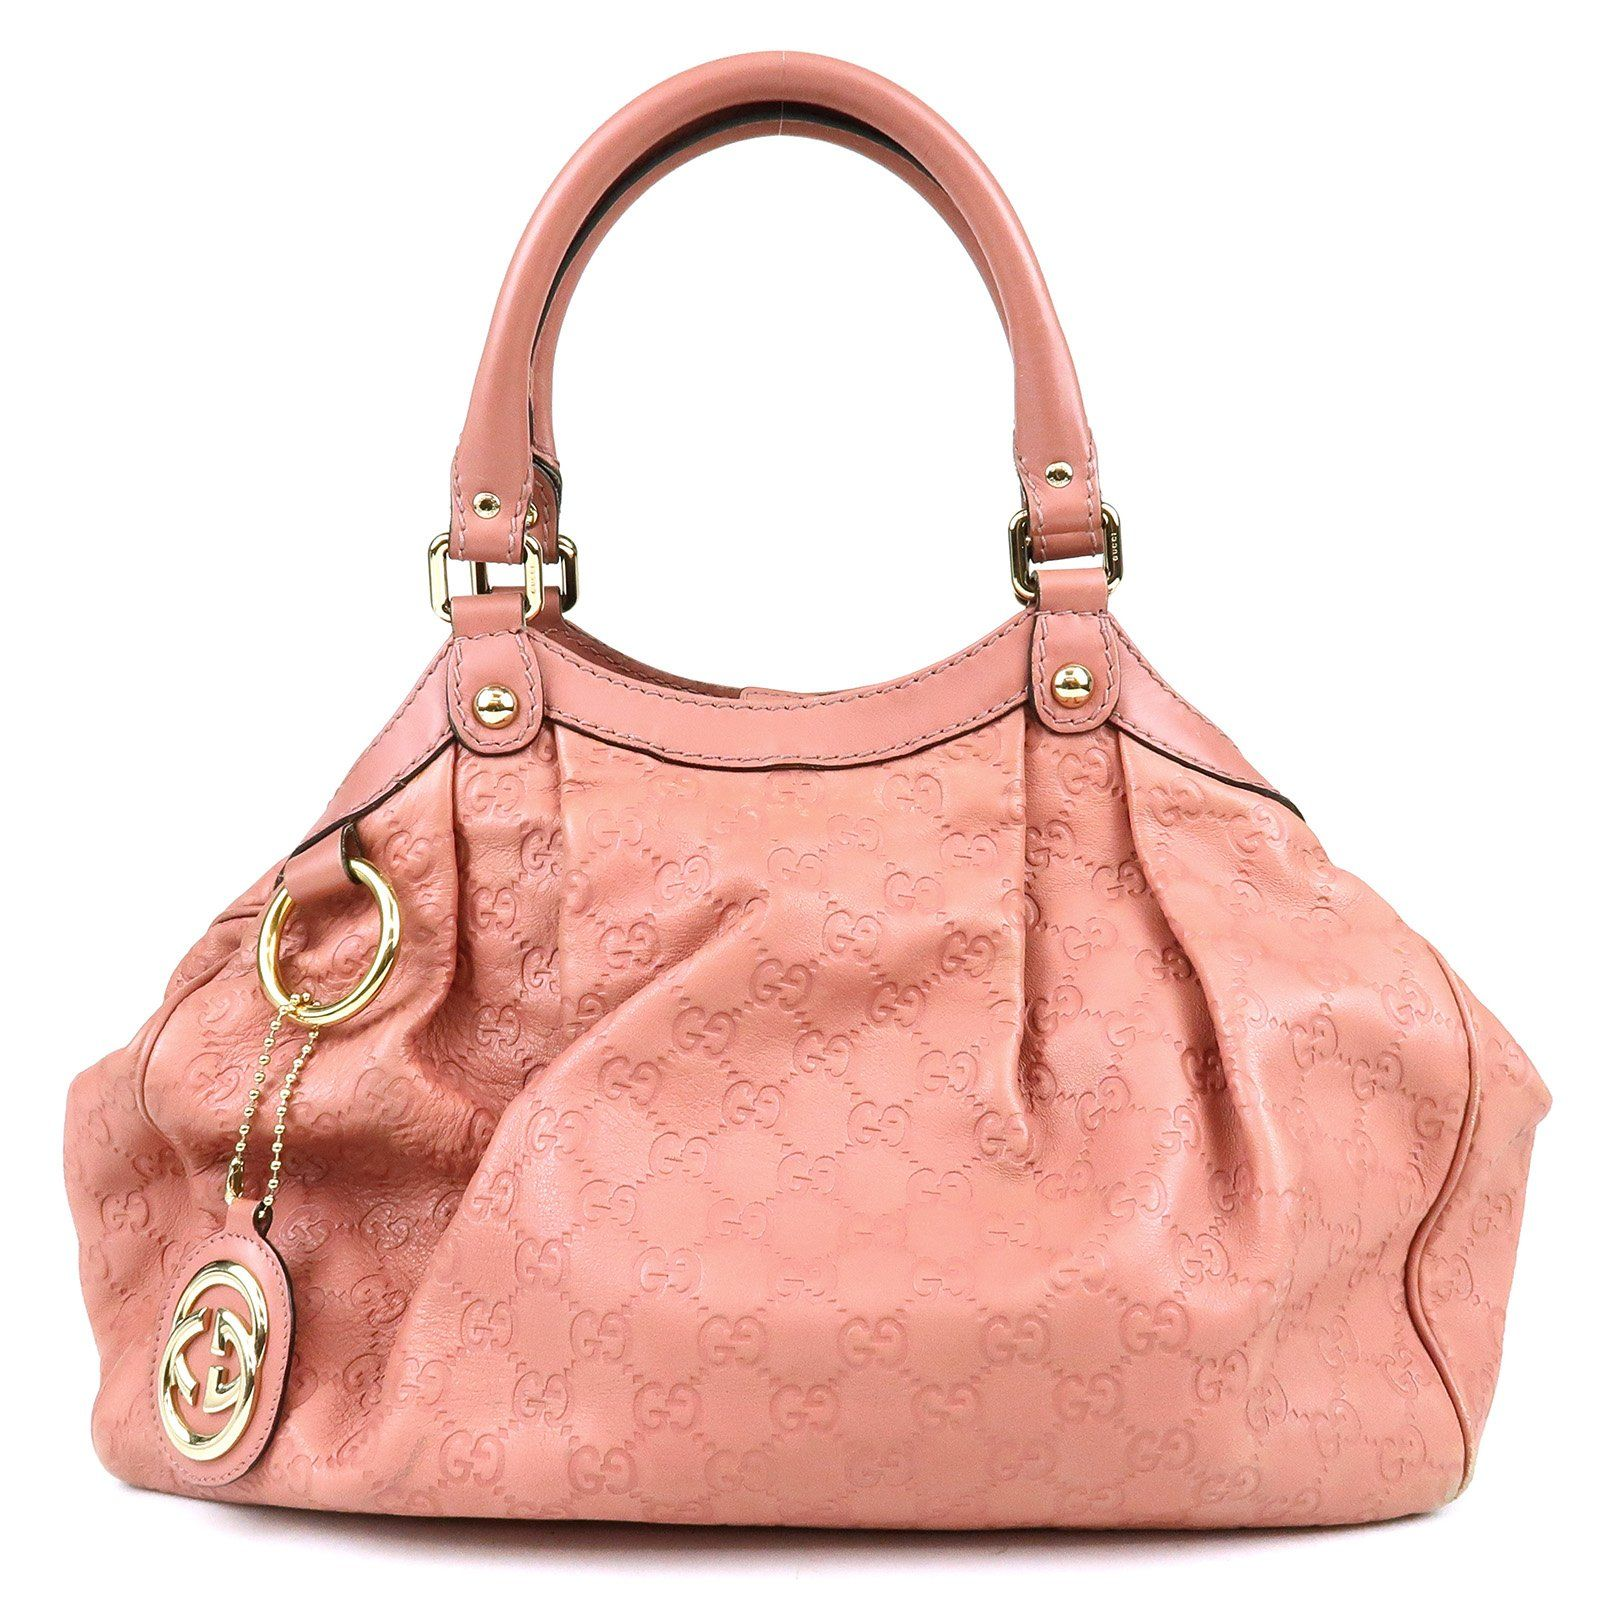 50cd00544e0a GUCCI Sukey Guccissima Leather Tote Bag Pink 211944 Used F/S  #guccileathertote